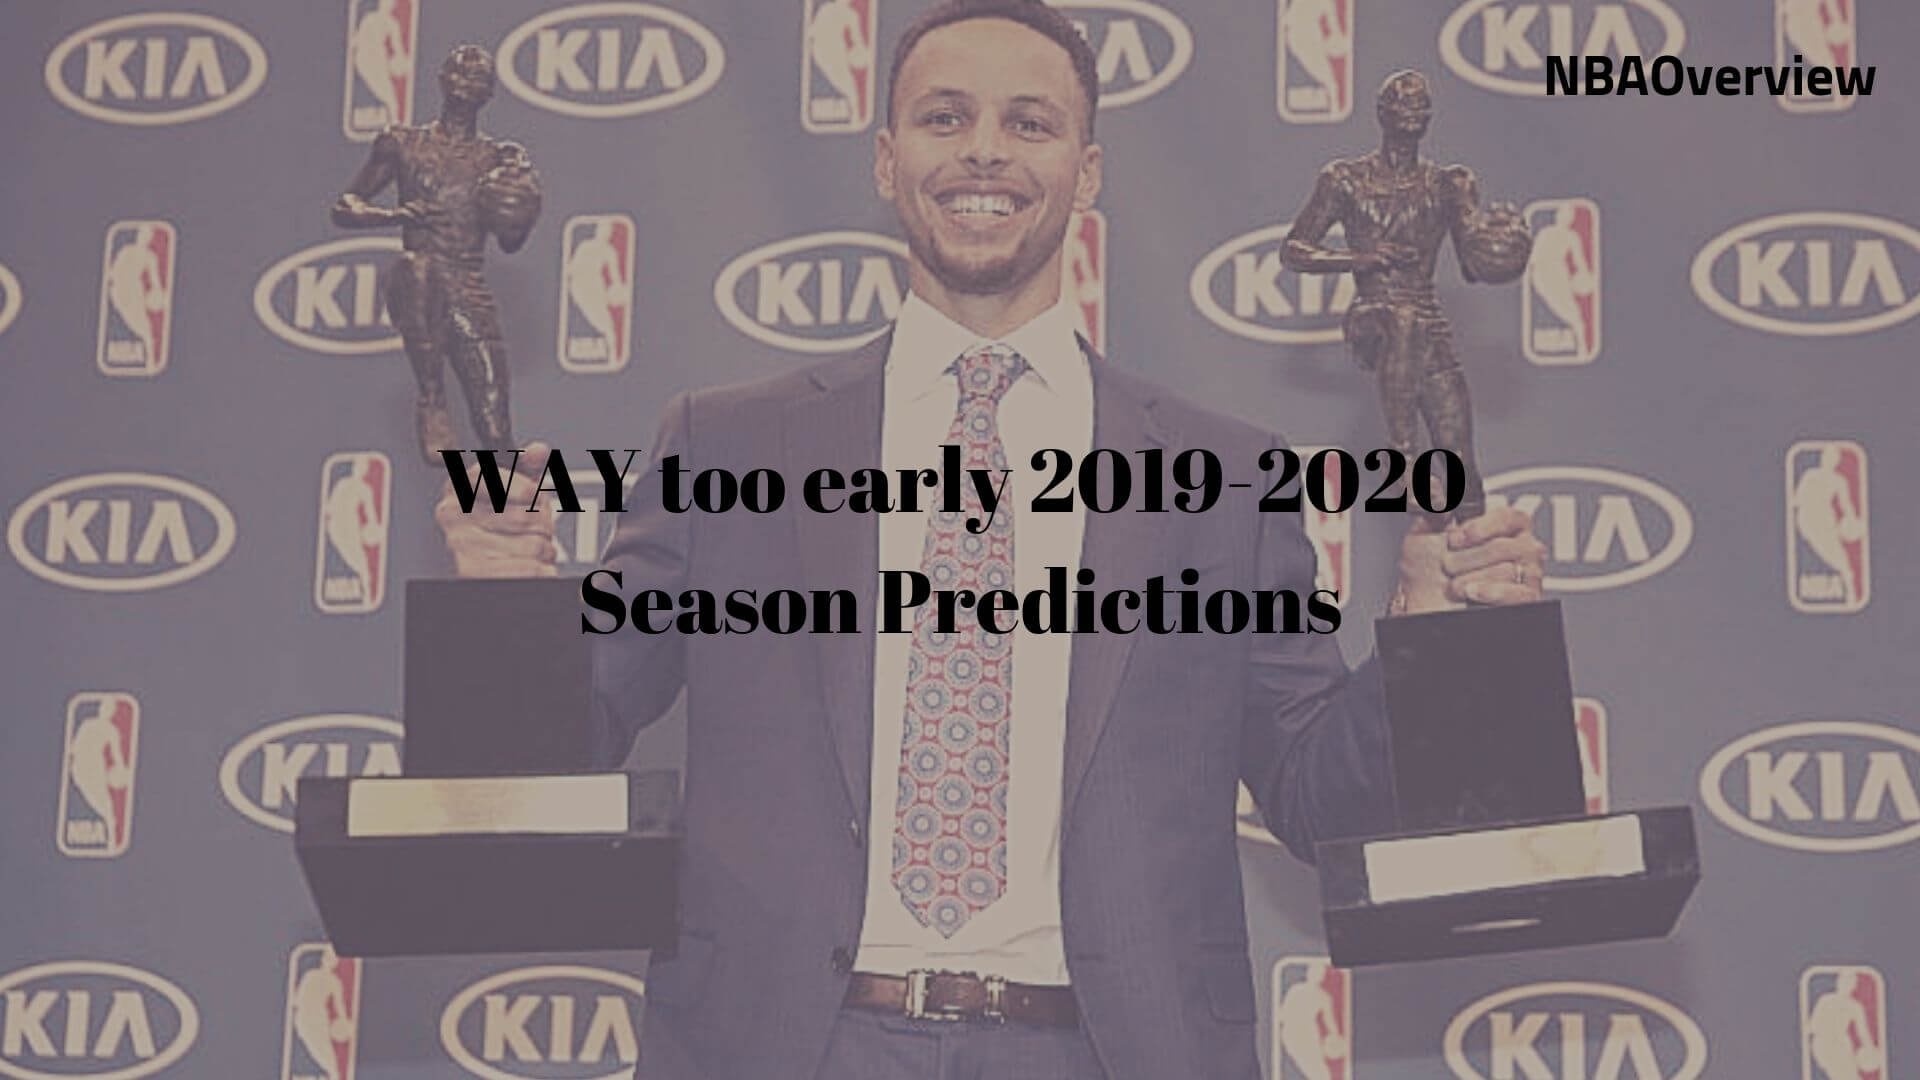 Our NBA predictions are forecasting the NBA awards and upcoming storylines with this article.